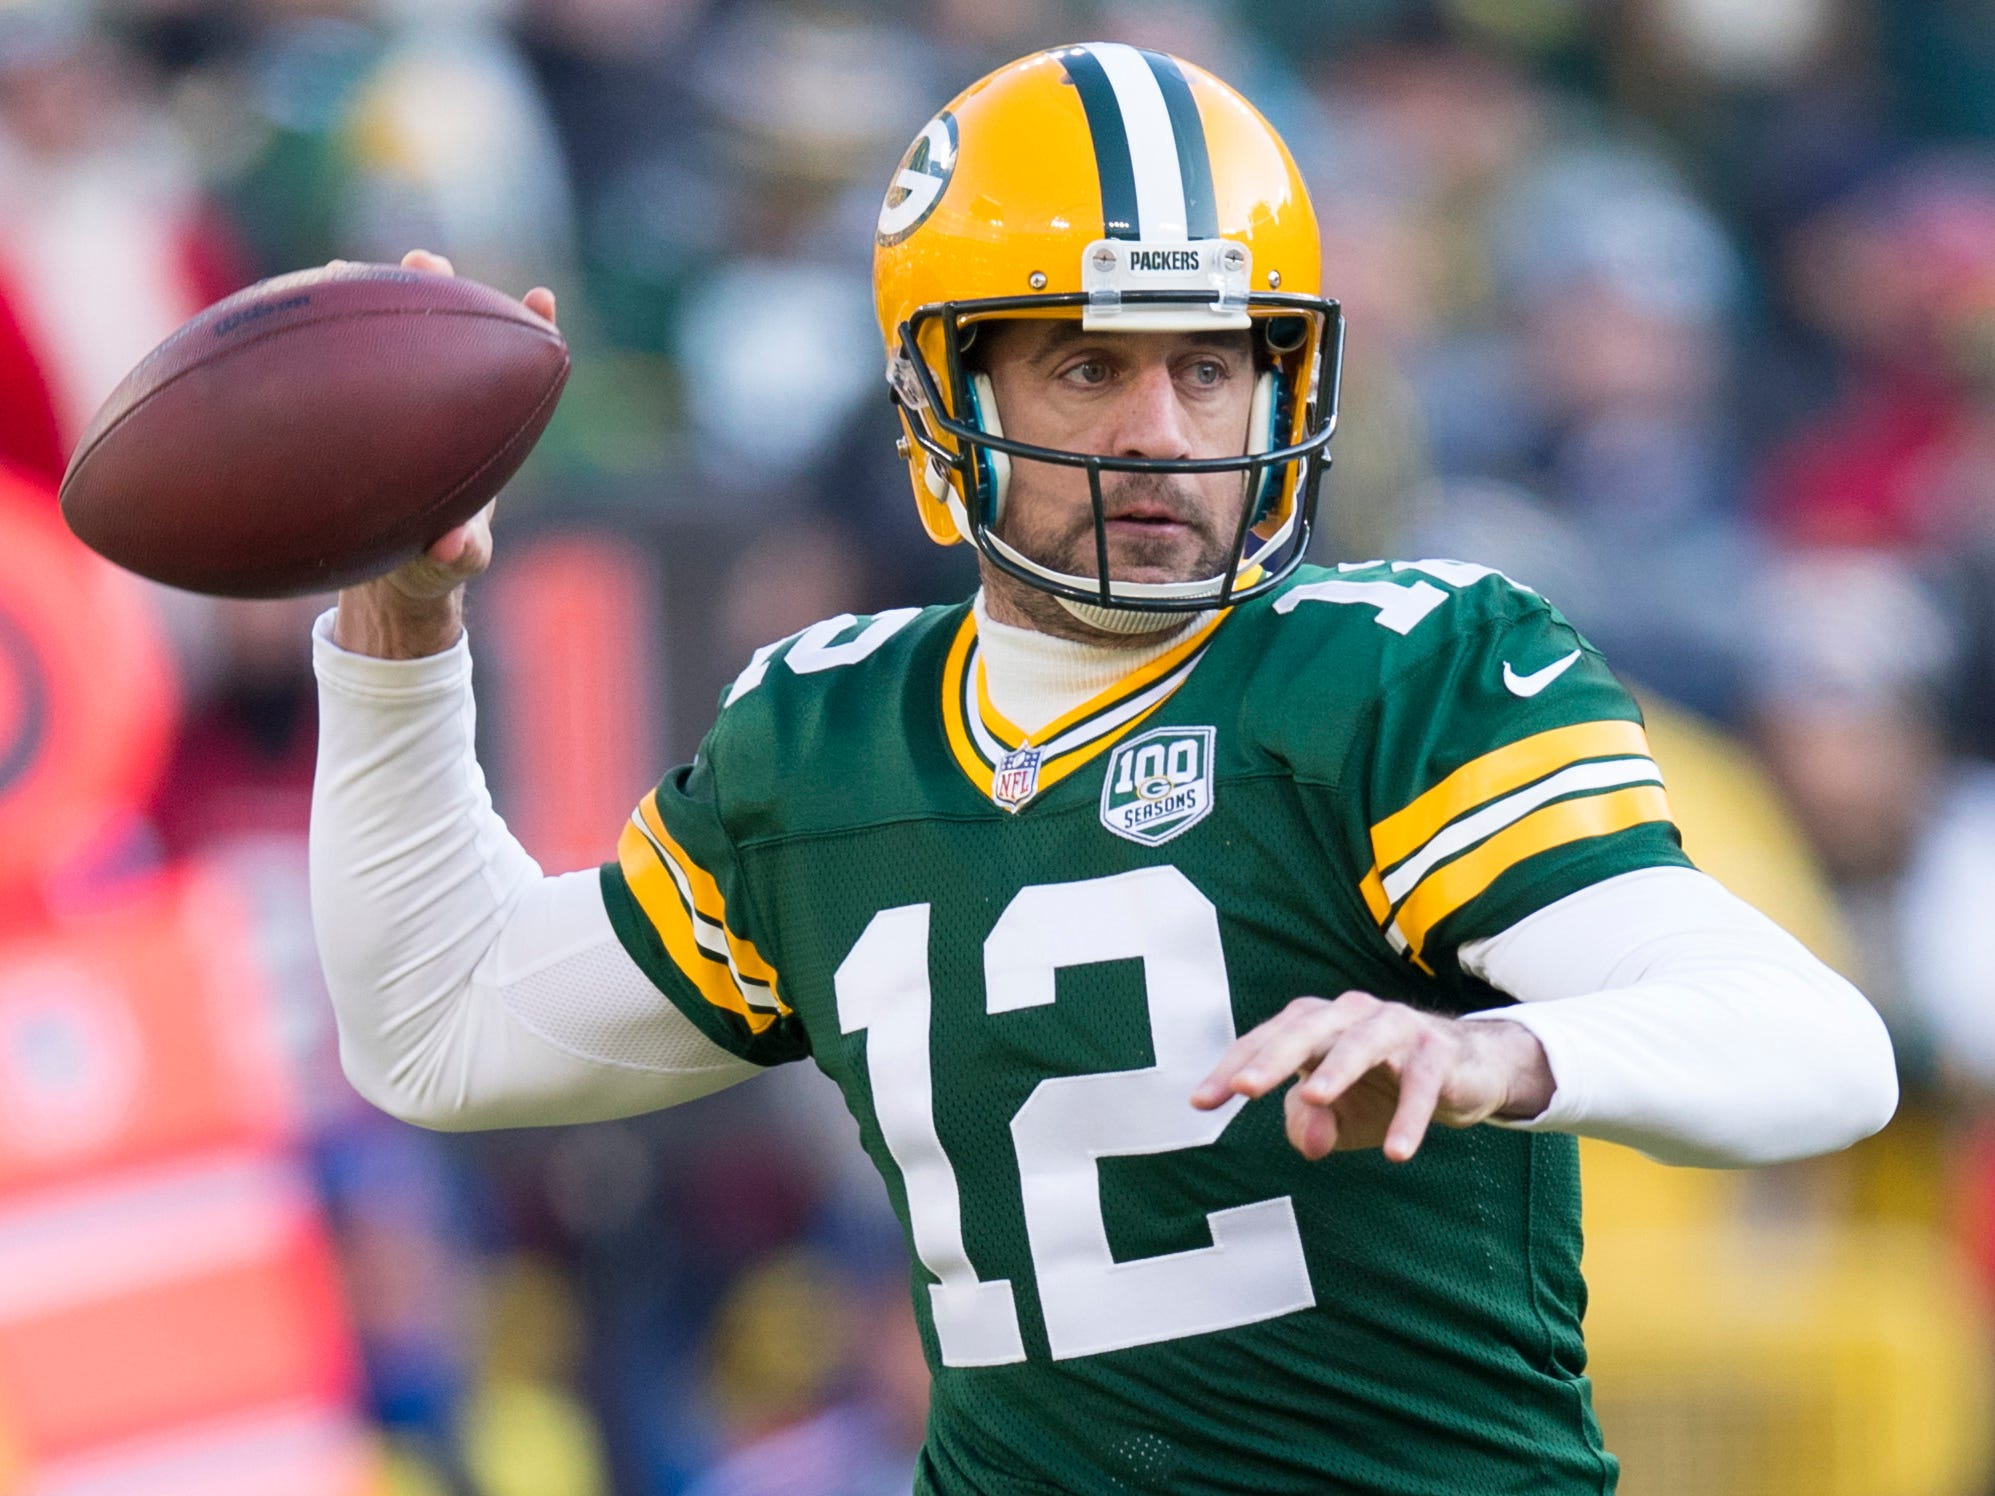 11. Packers (11): Given offseason focus slanted toward defense, apparently they're comfortable Aaron Rodgers and coach Matt LaFleur have sufficient weaponry.